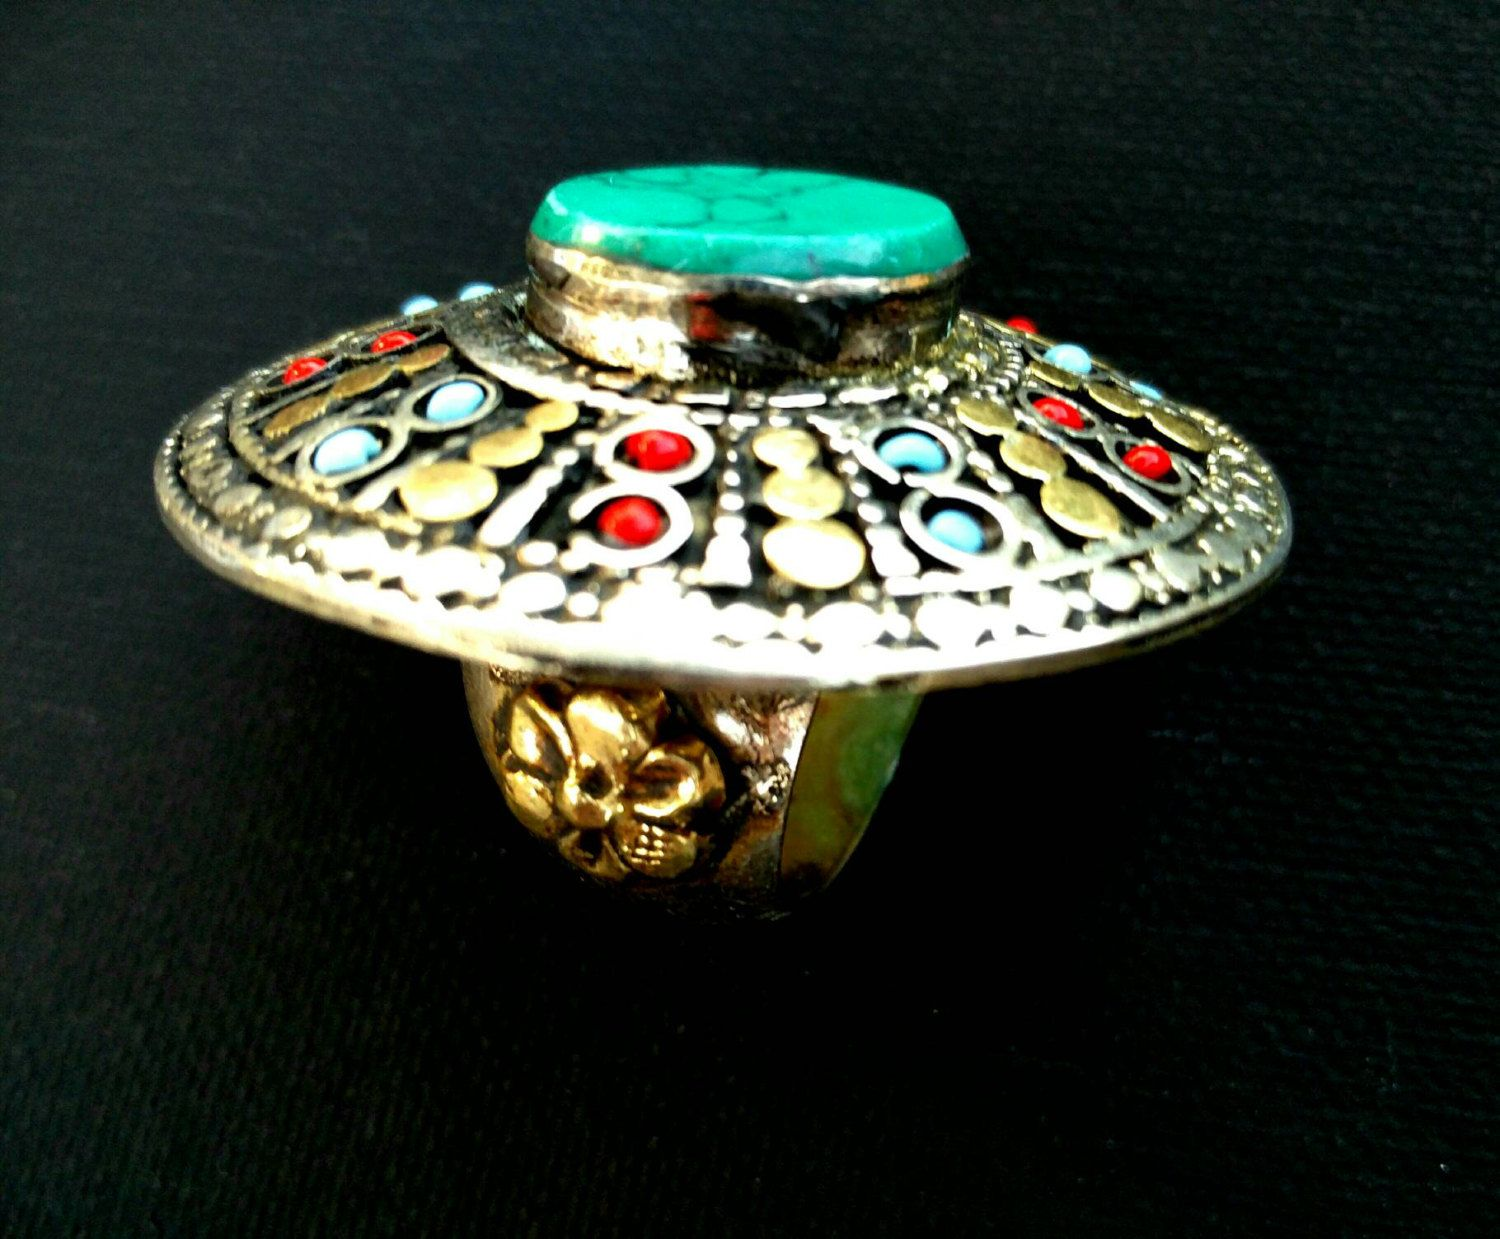 Vintage Handmade Ring Women Afghan Kuchi Tribal Jewelry Antique Jewelry Banjara Boho Gypsy Indian Ring Stone Ring Free Shipping Gift for her by RareFindingsUS on Etsy